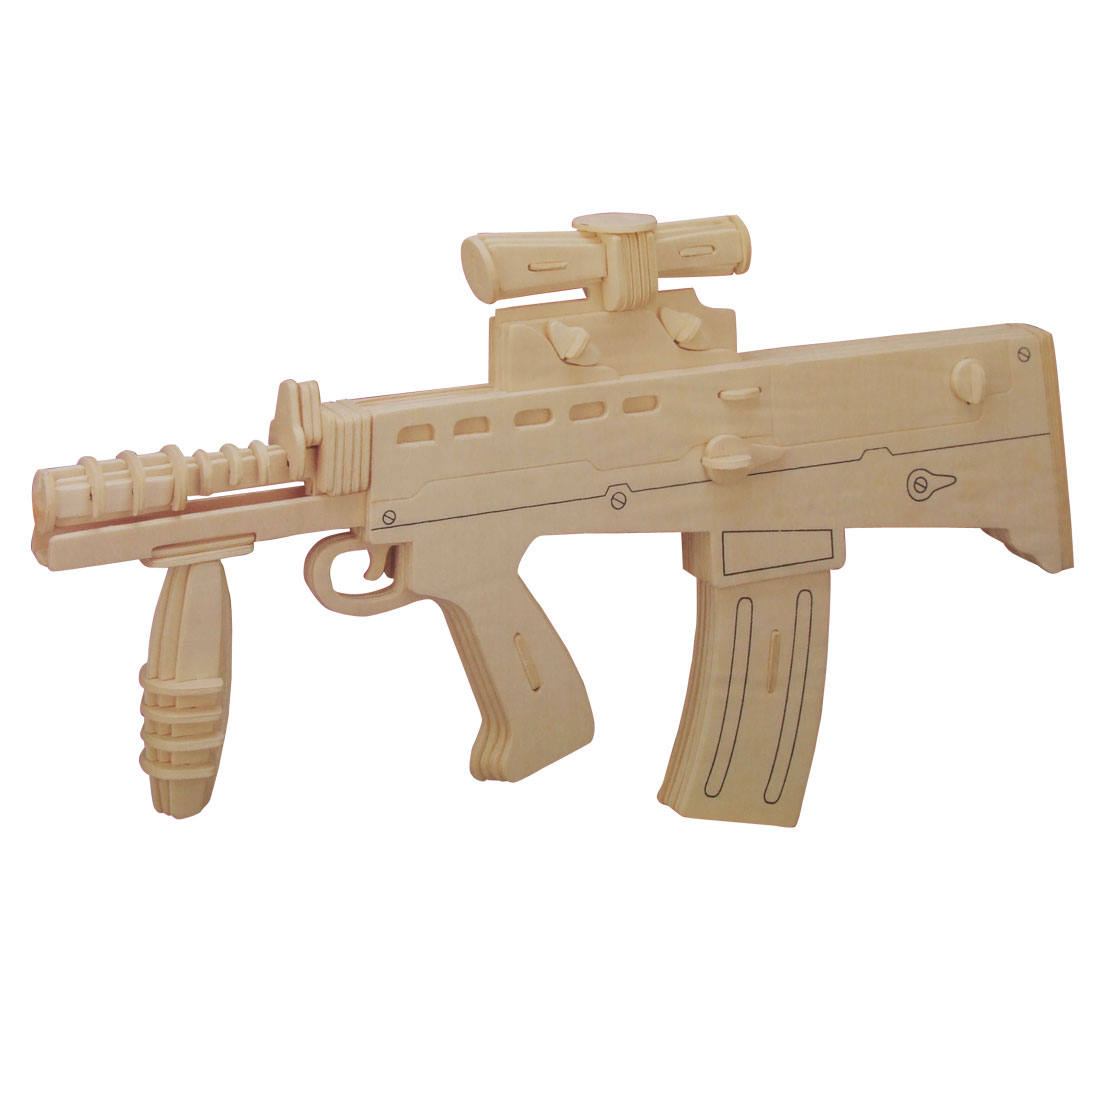 Children Carbine Model Wood Construction Kit DIY Puzzle Toy